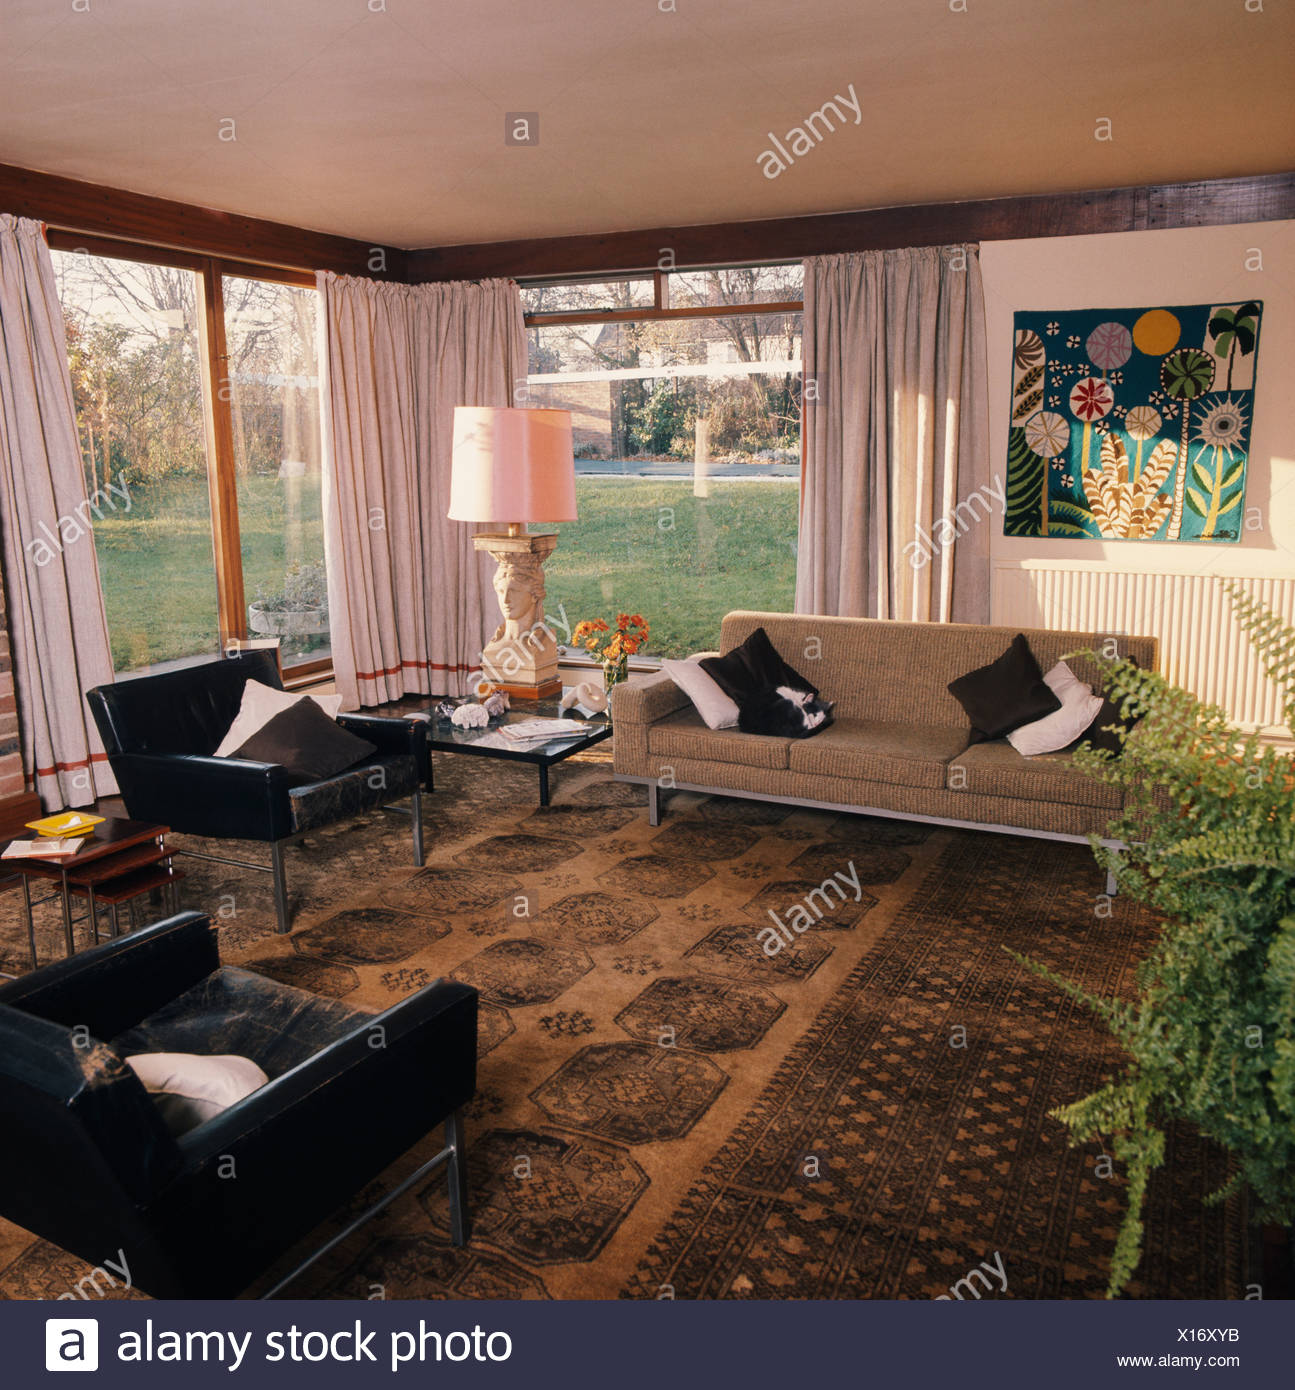 Black Leather Armchairs And Beige Sofa In Sixties Living Room With Brown  Oriental Carpet And White Curtains On Large Windows